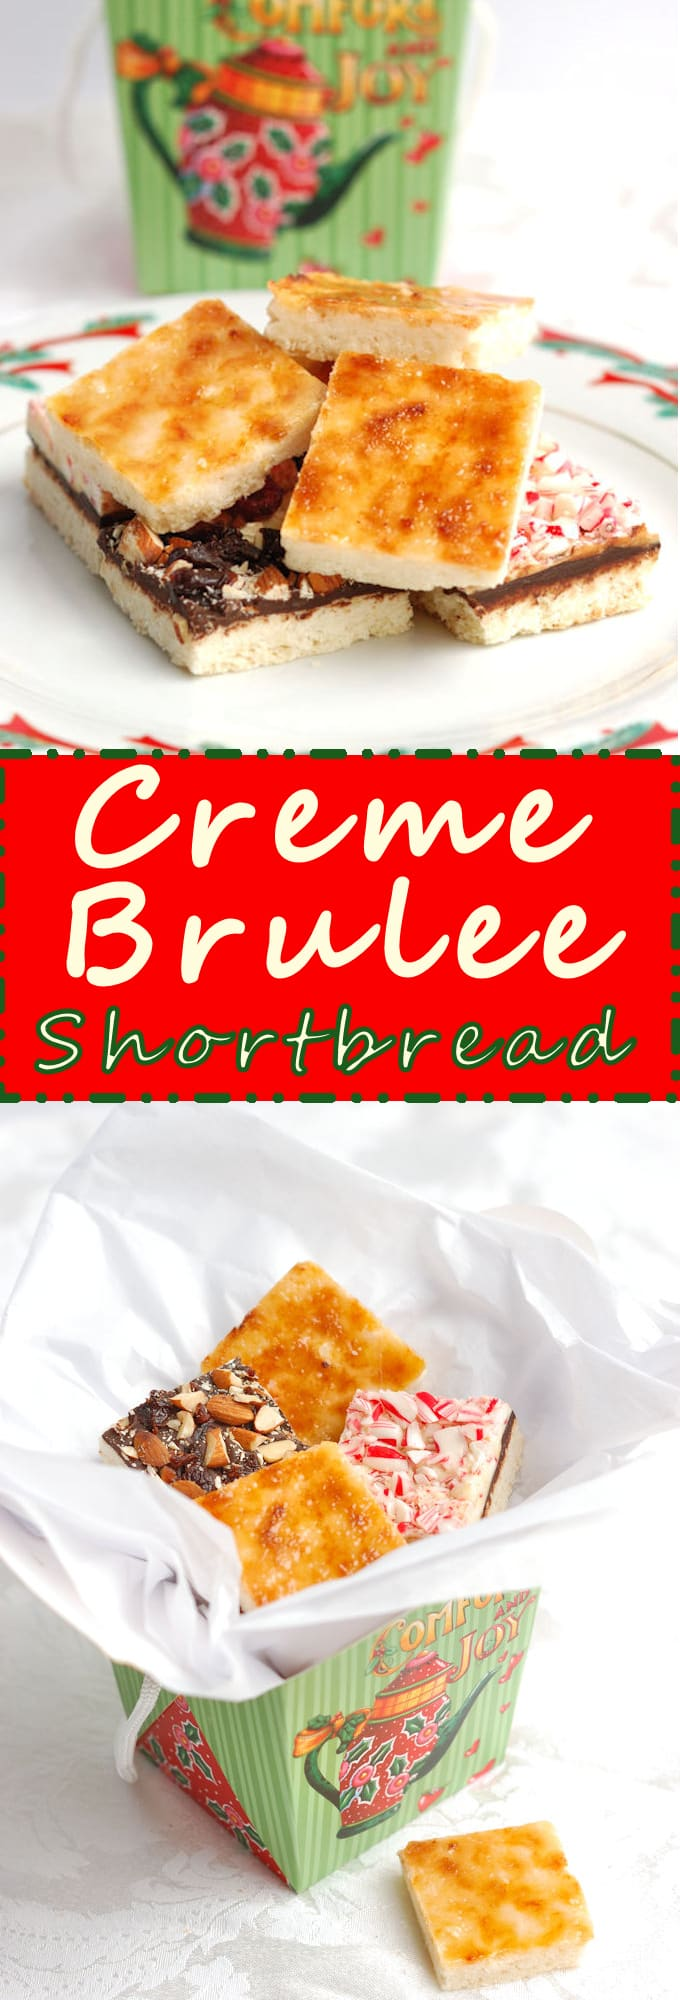 Crackly, crispy caramelized crust makes this shortbread irresistible. The perfect addition to a holiday gift box